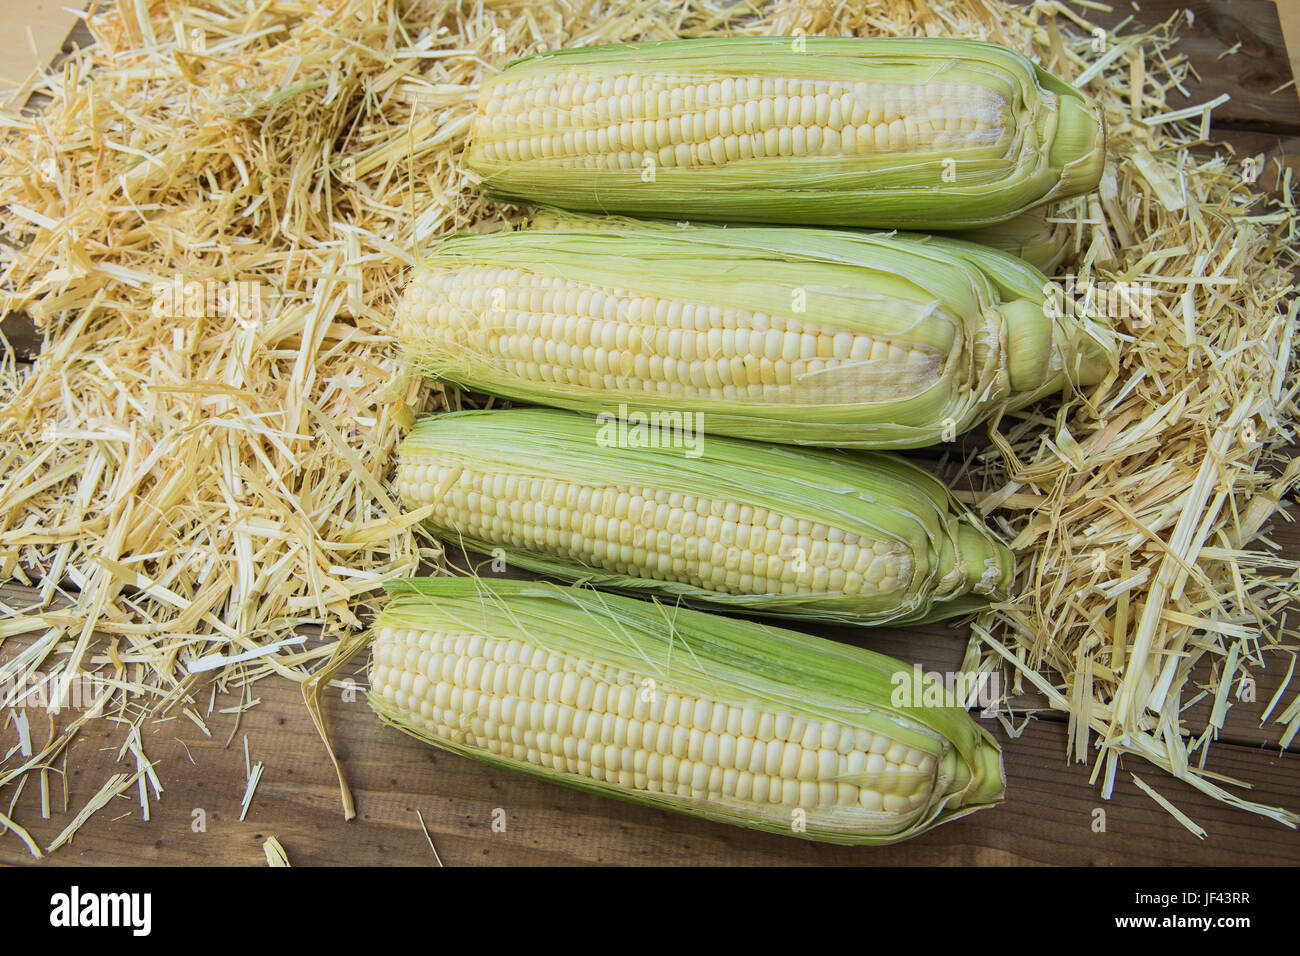 Fresh white  sweetcorn in their husks on a bed of straw - Stock Image